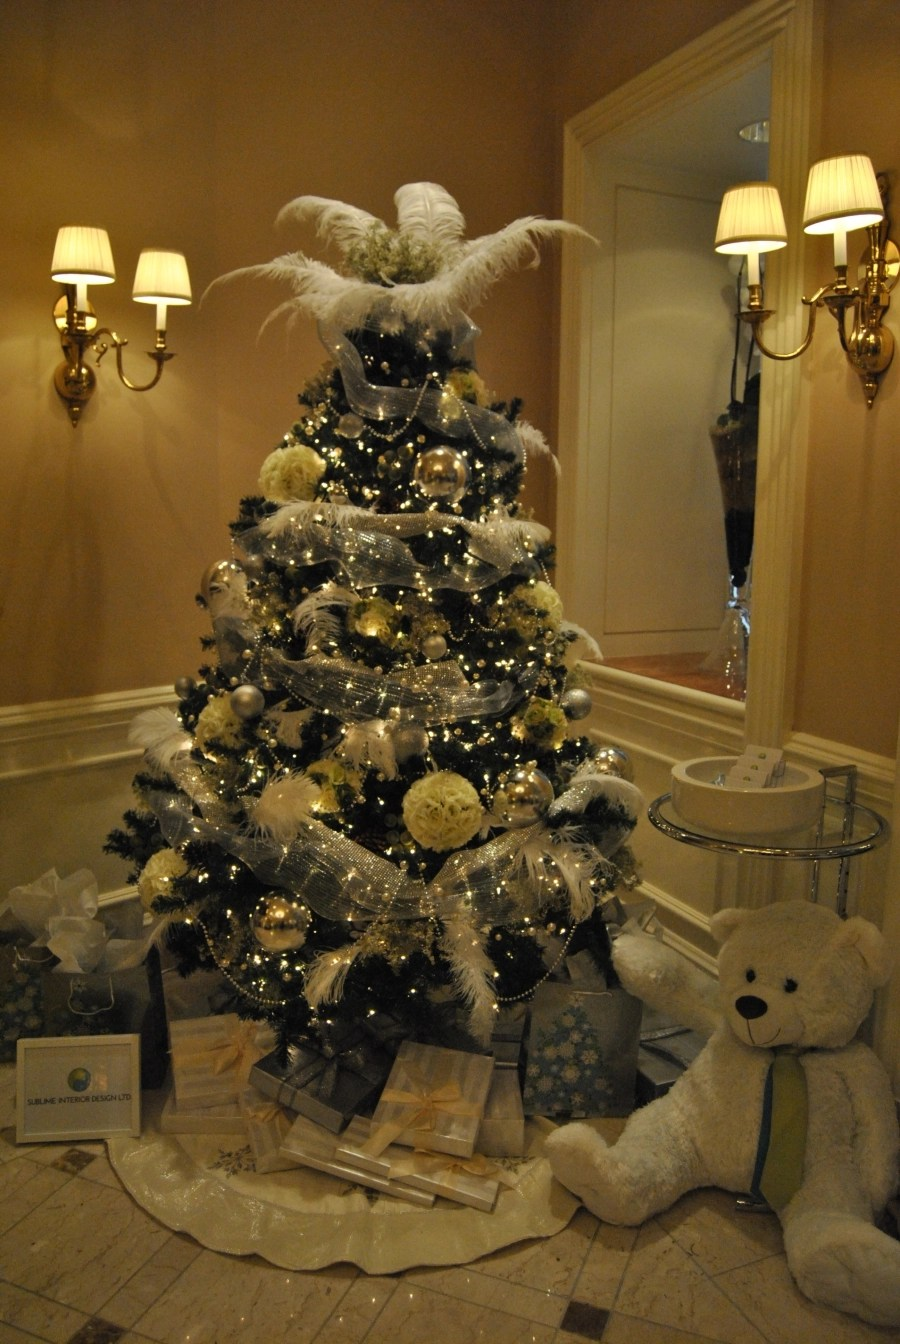 45 Classy Christmas Tree Decorations Ideas Decoration Love